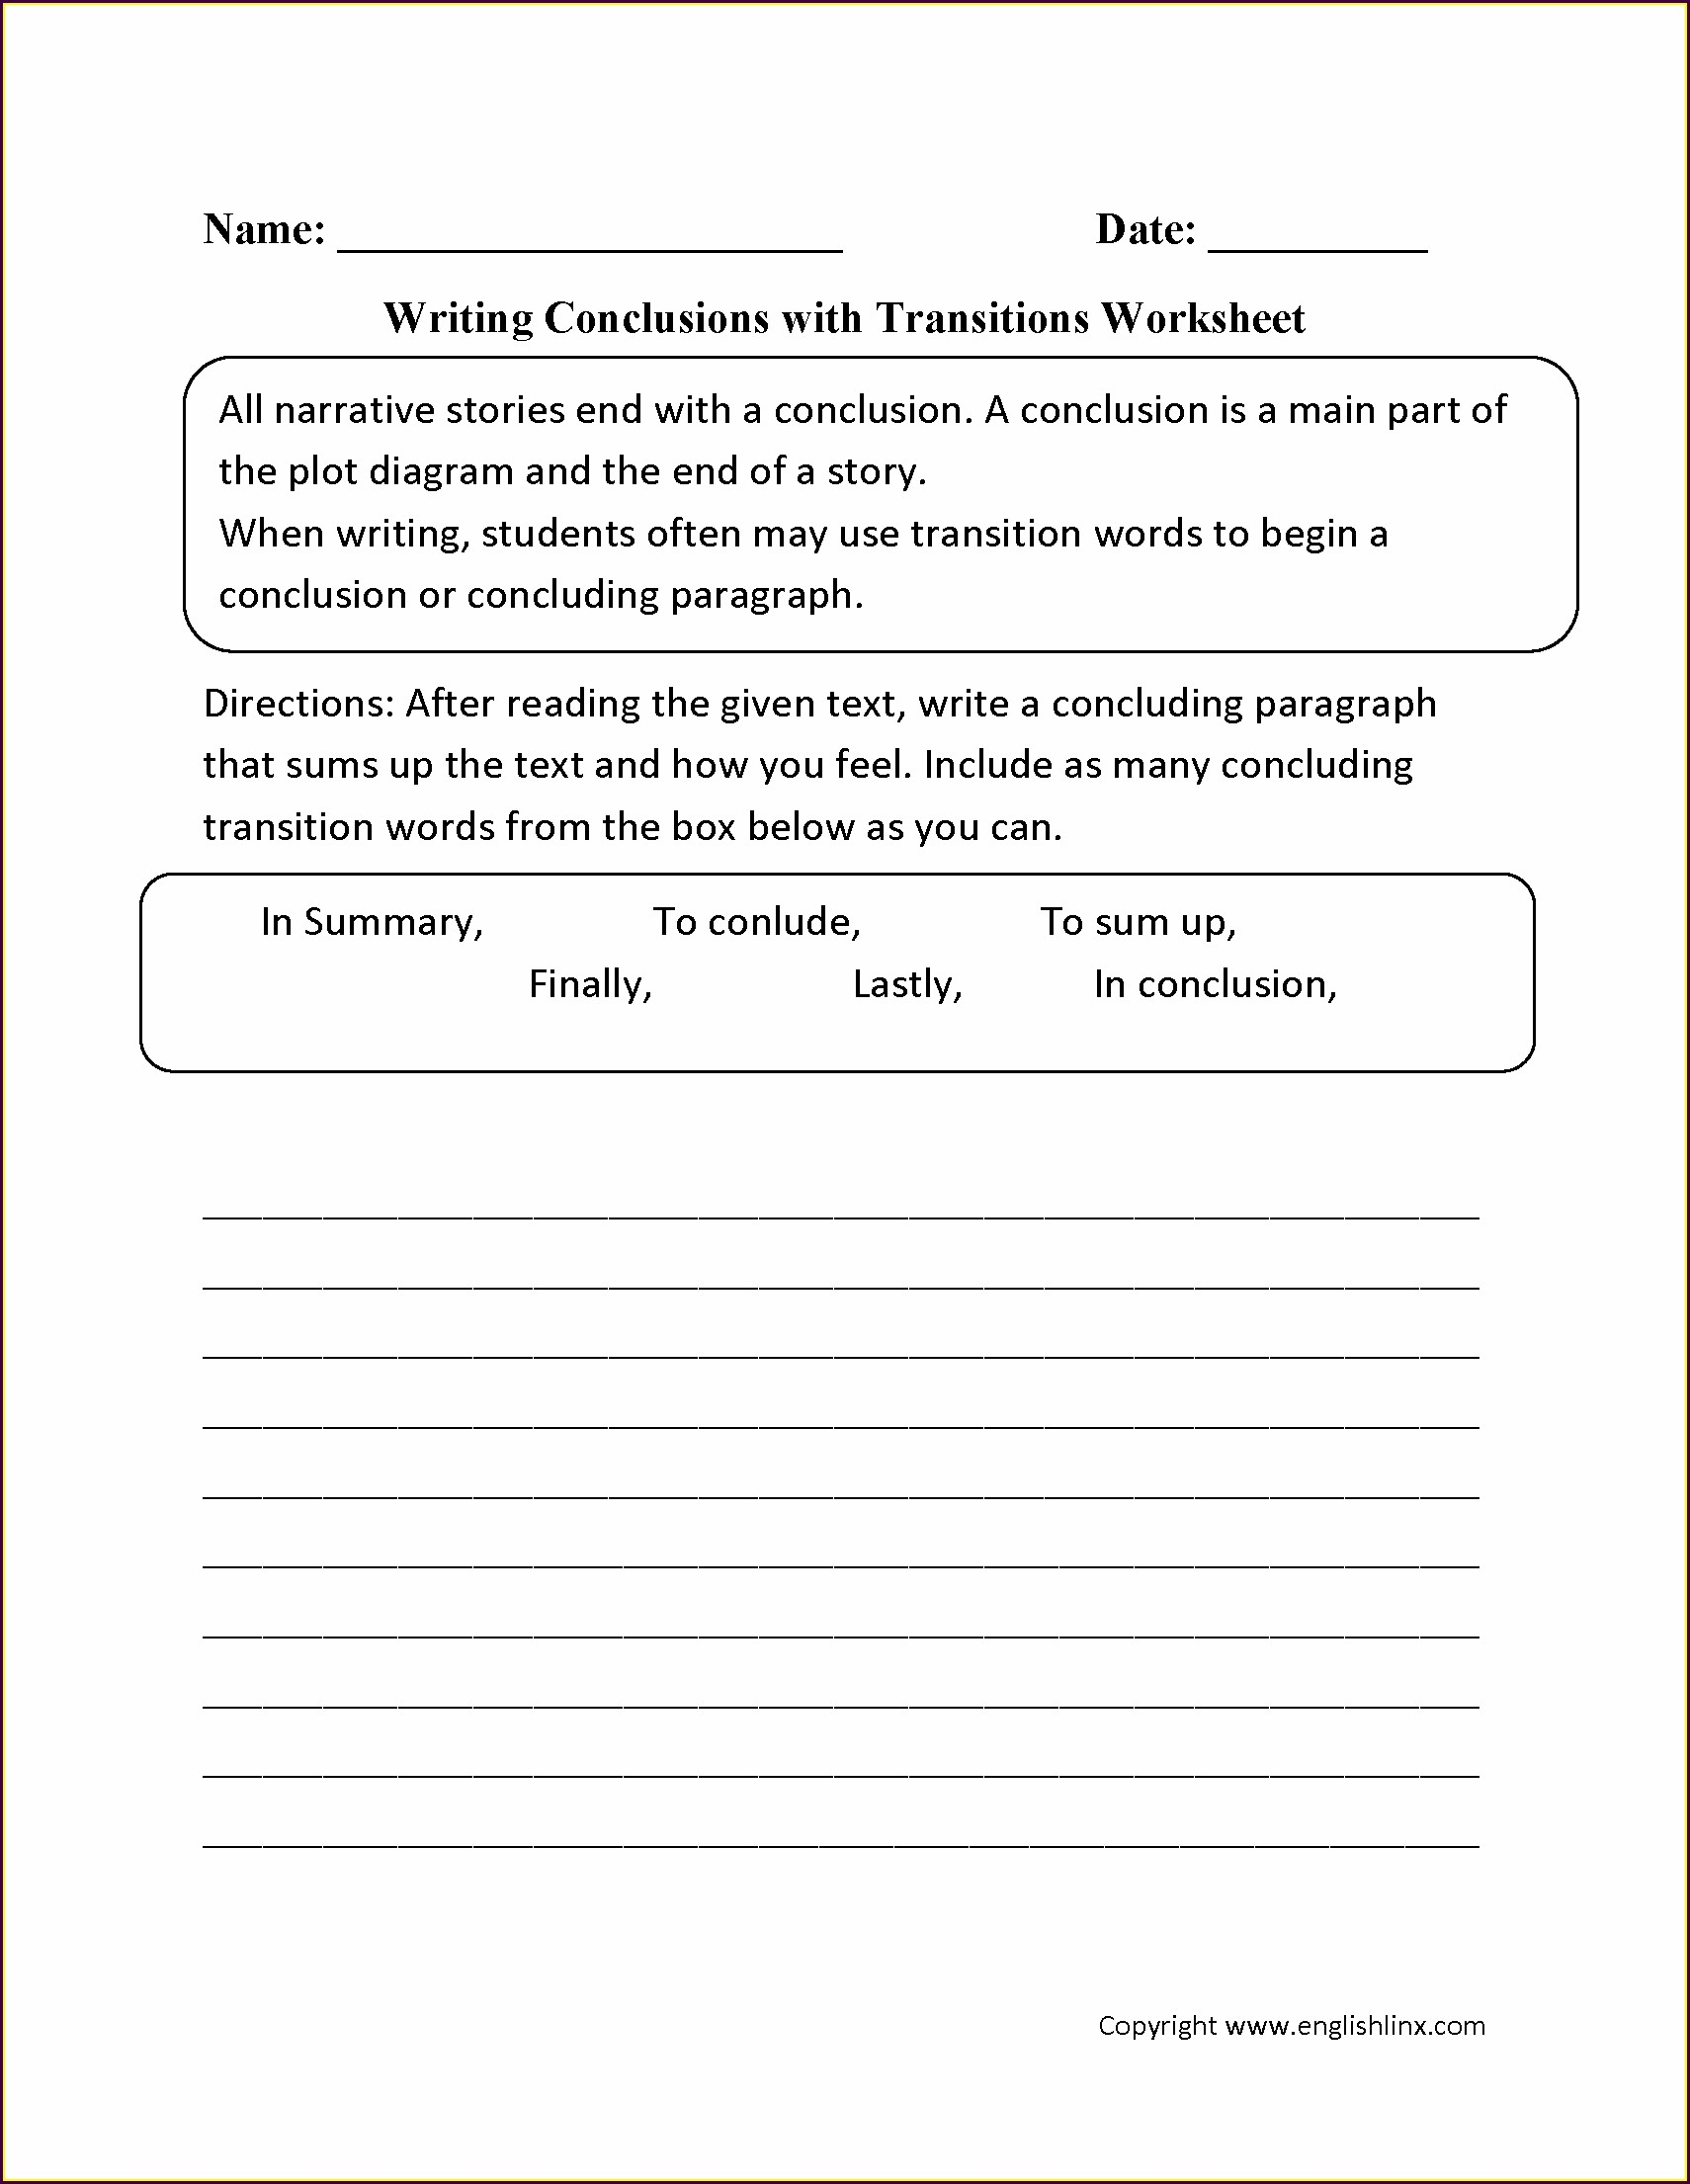 Transitional Words Worksheet 5th Grade